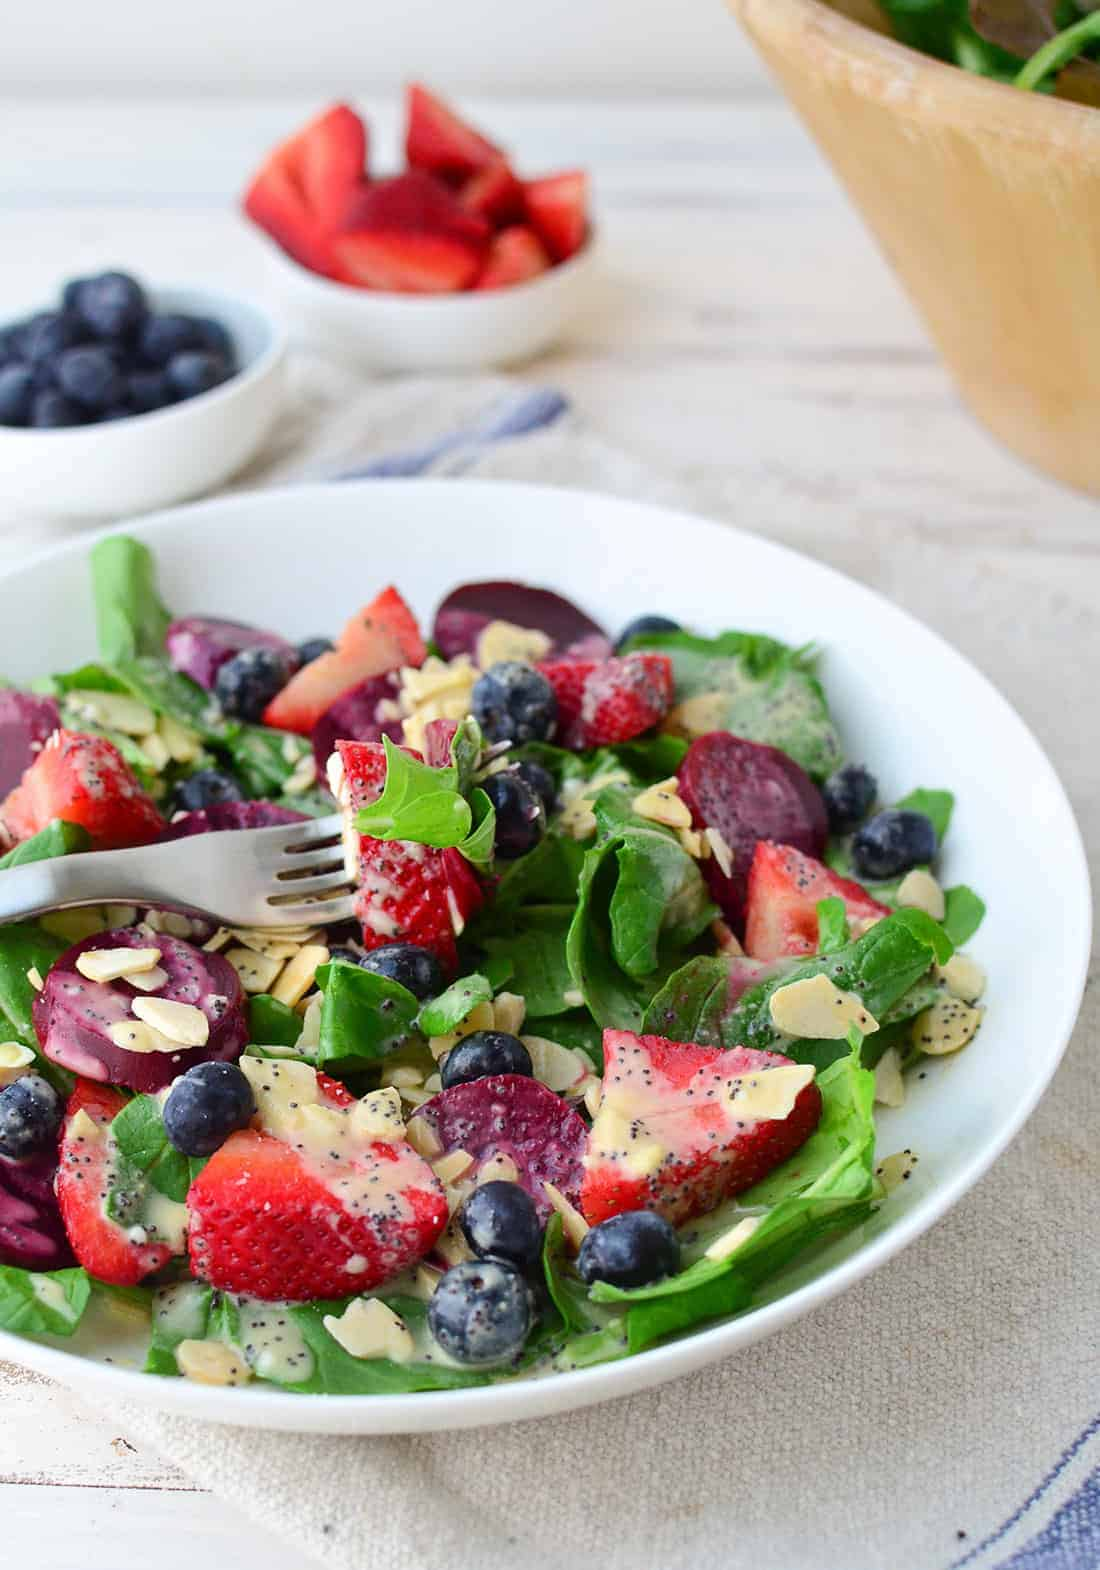 Beet and Berry Salad with dairy-free poppy seed dressing! This salad is packed with nutrients and perfect for lunch or dinner! | www.delishknowledge.com